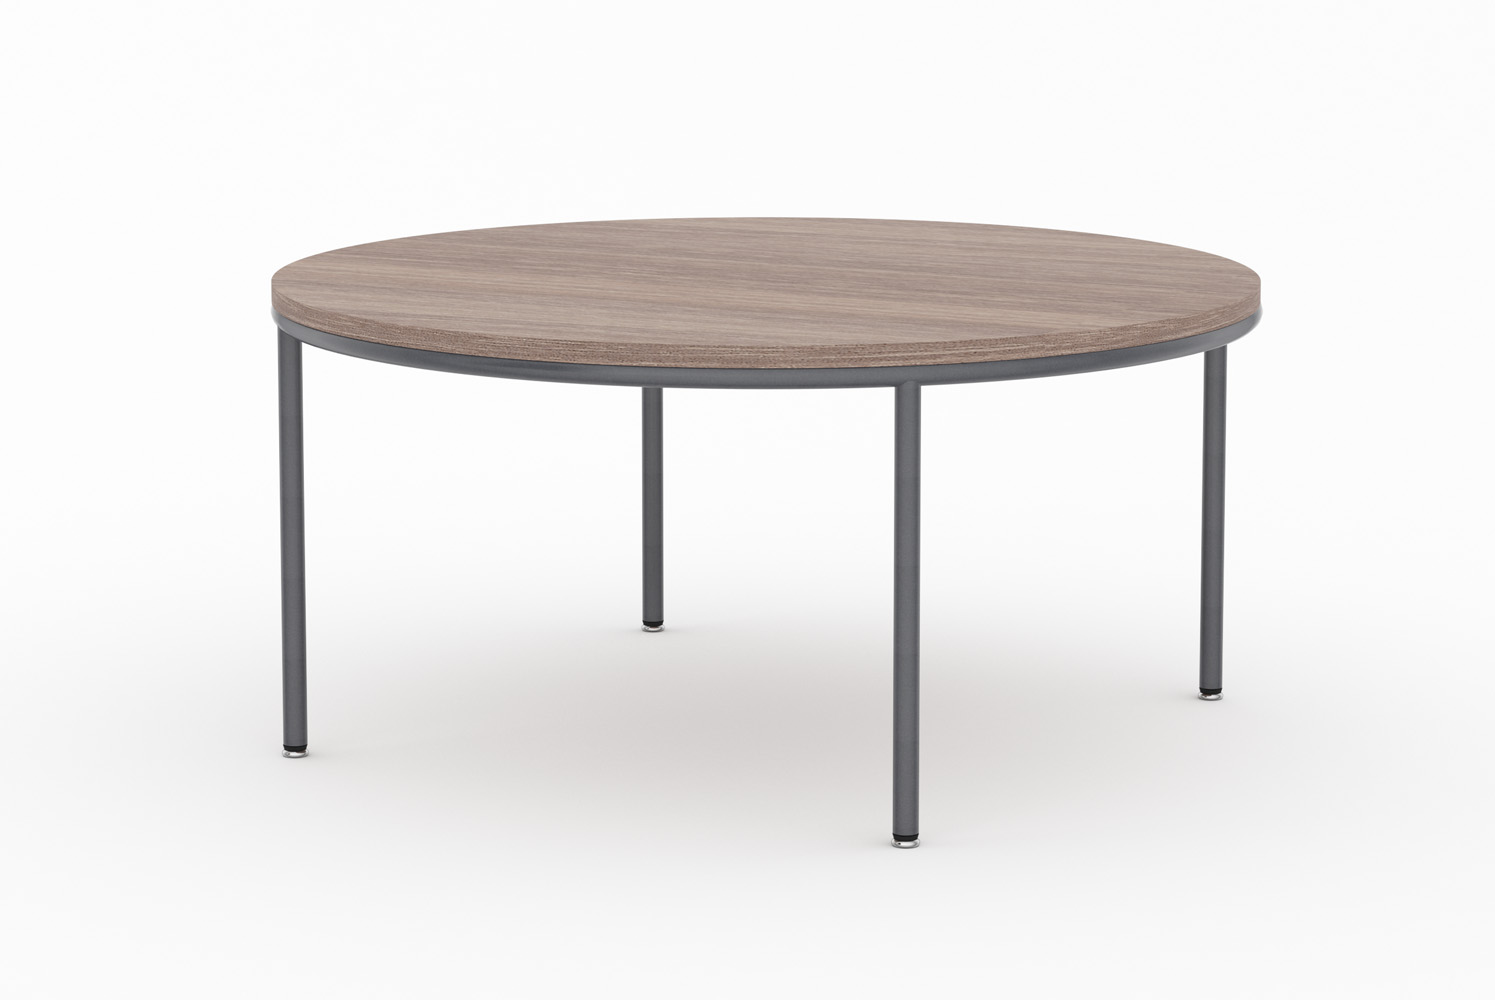 Cody. Cody Occasional Table